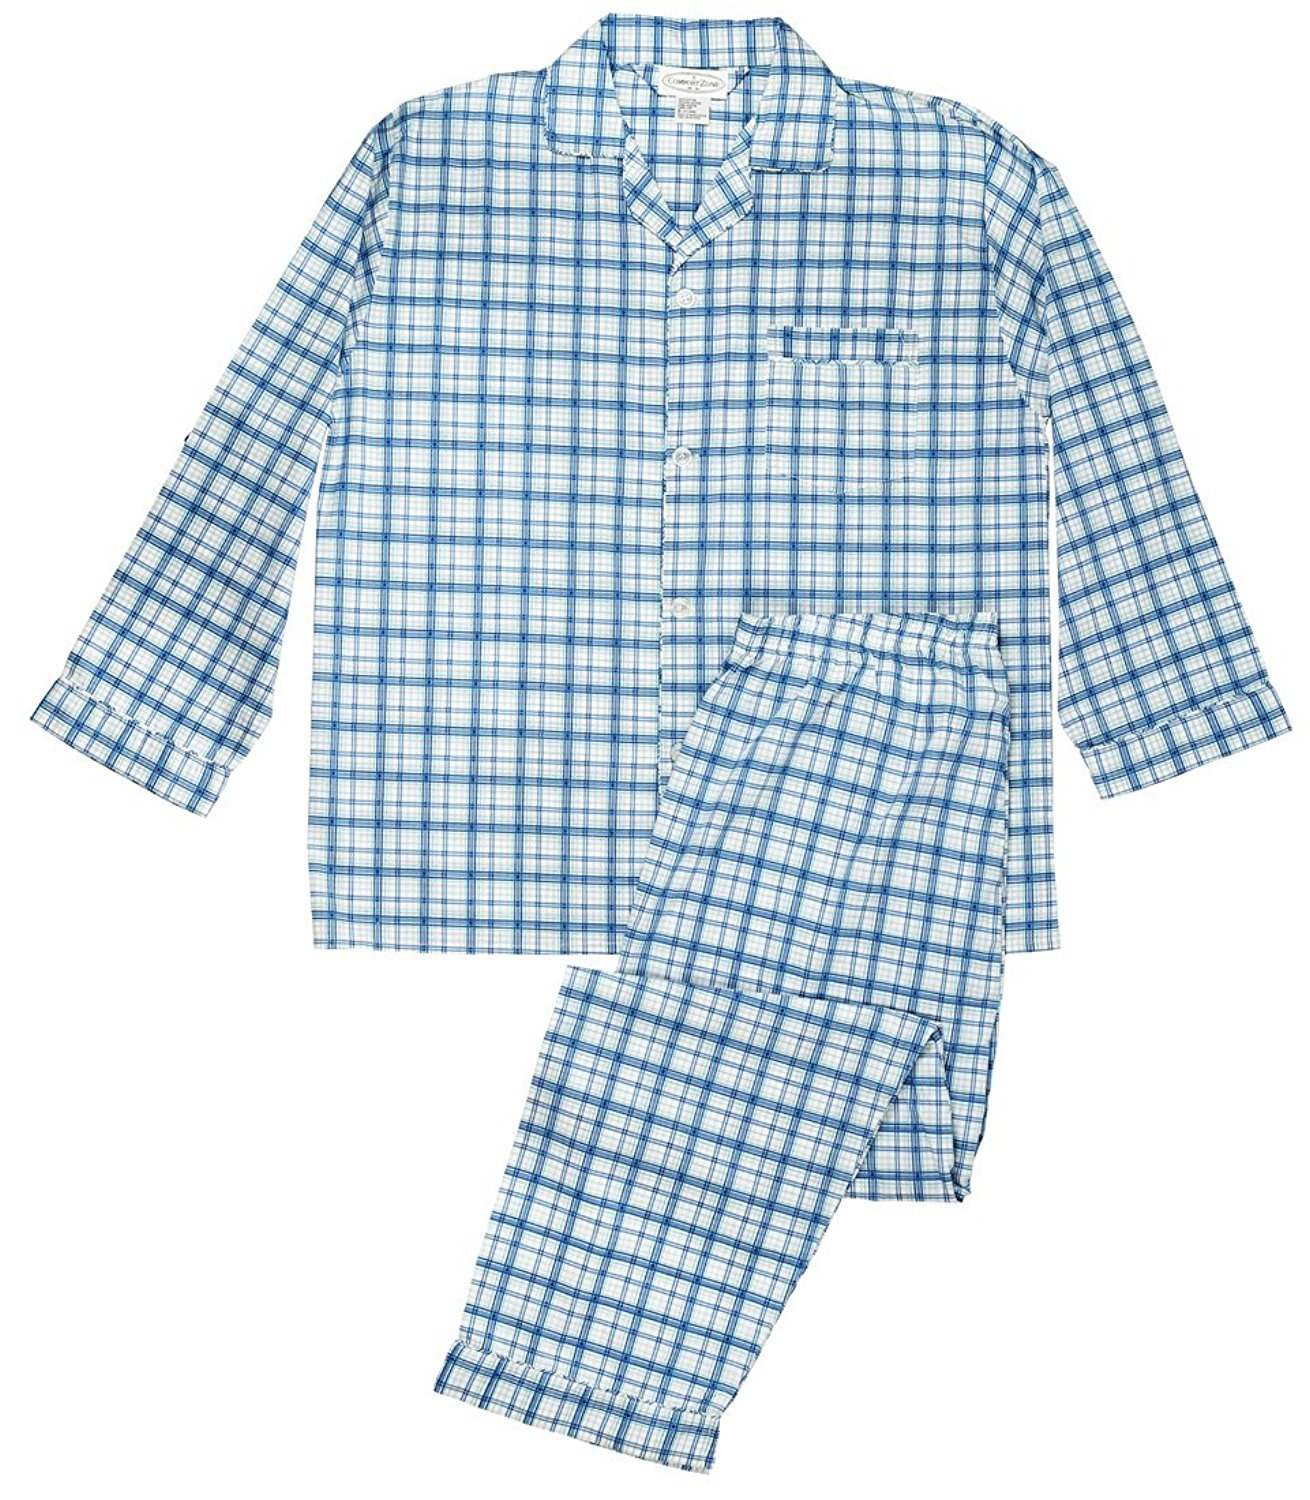 Men's Woven Sleepwear Long Sleeve Pajama Set Cotton Blend - Blue Plaids Medium